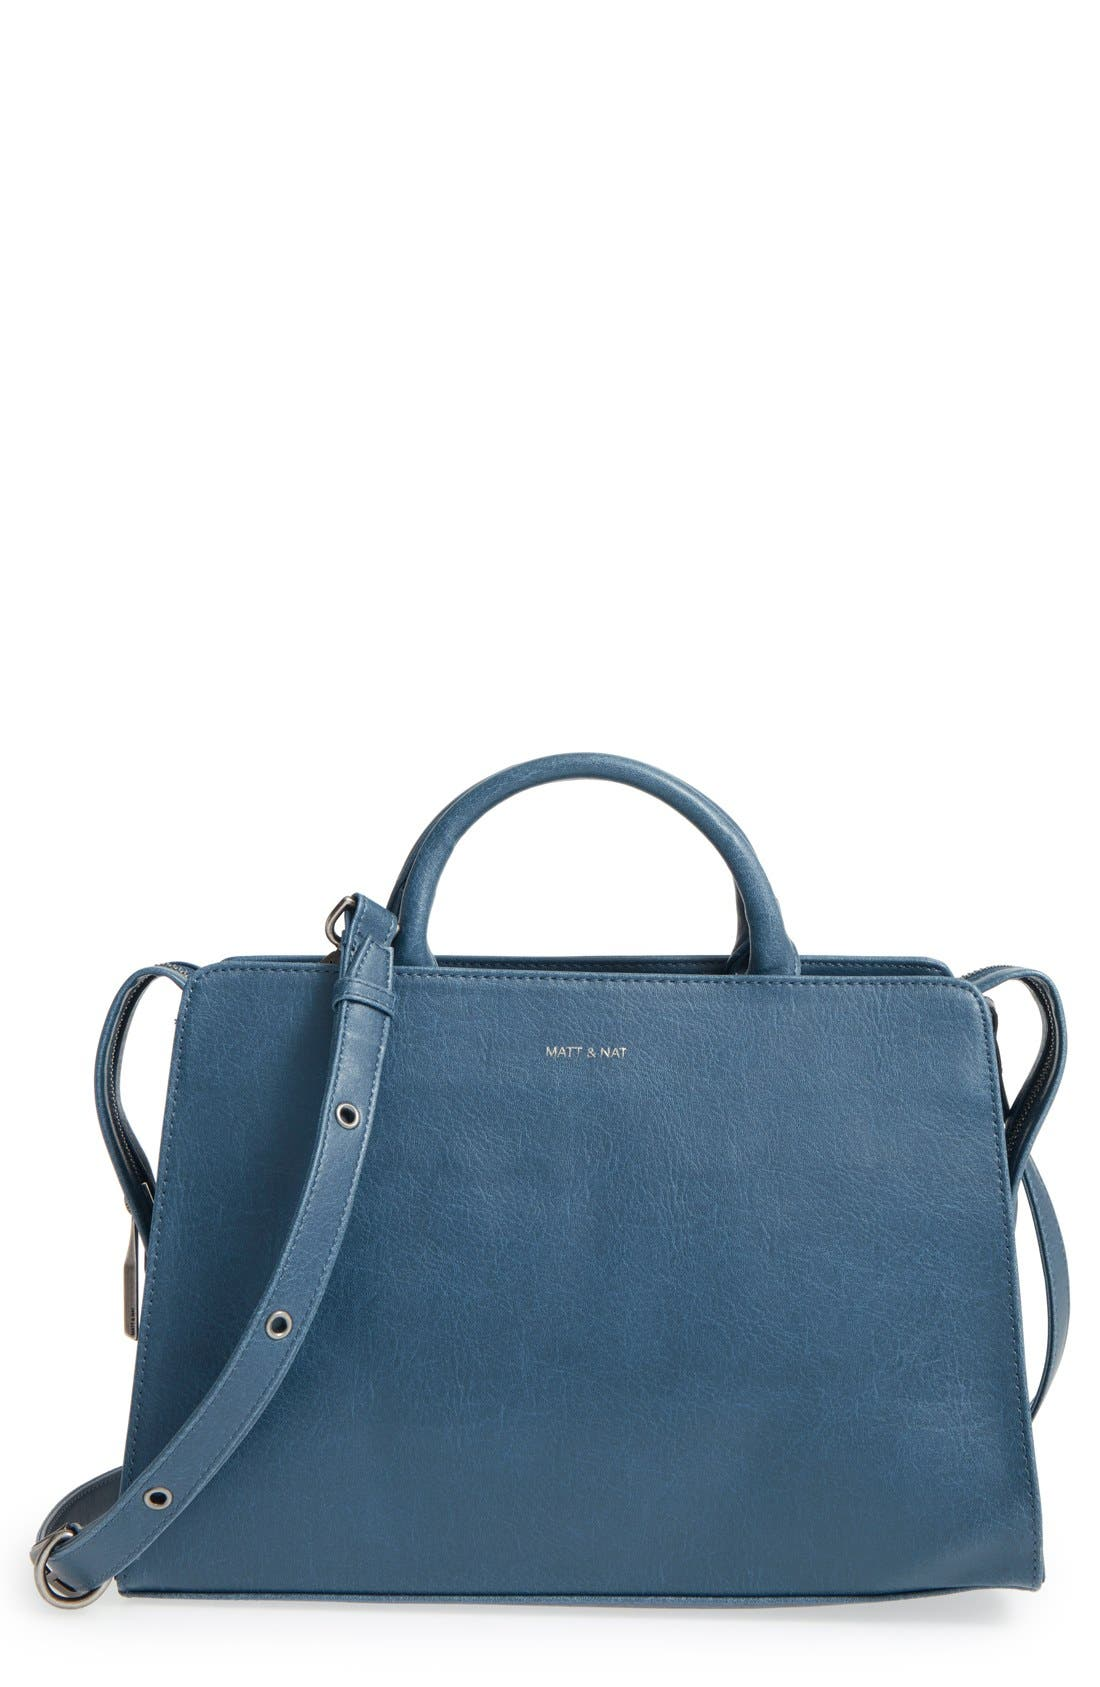 MATT & NAT 'Portia' Vegan Leather Satchel